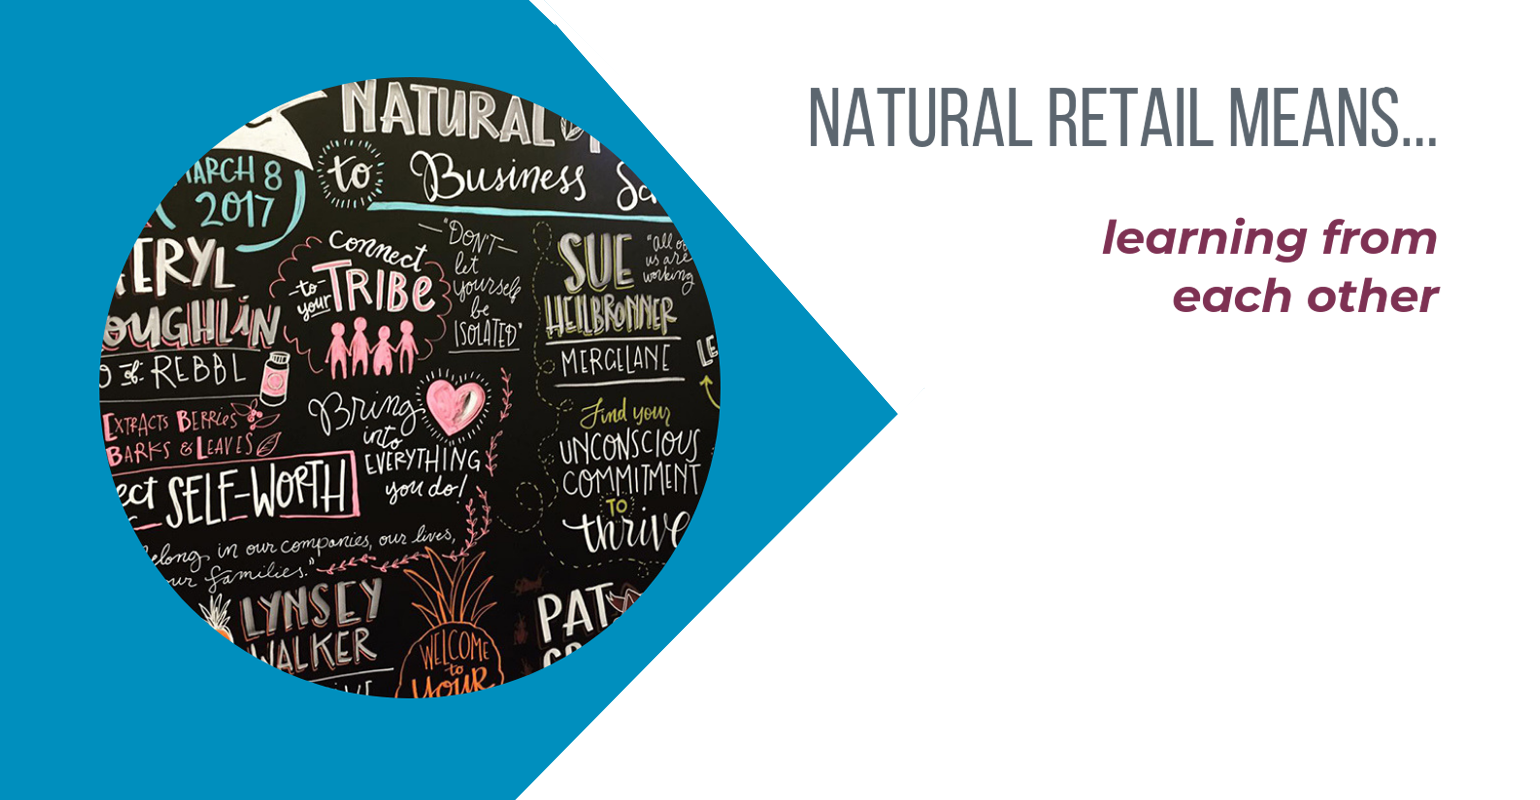 Natural retail means learning from each other